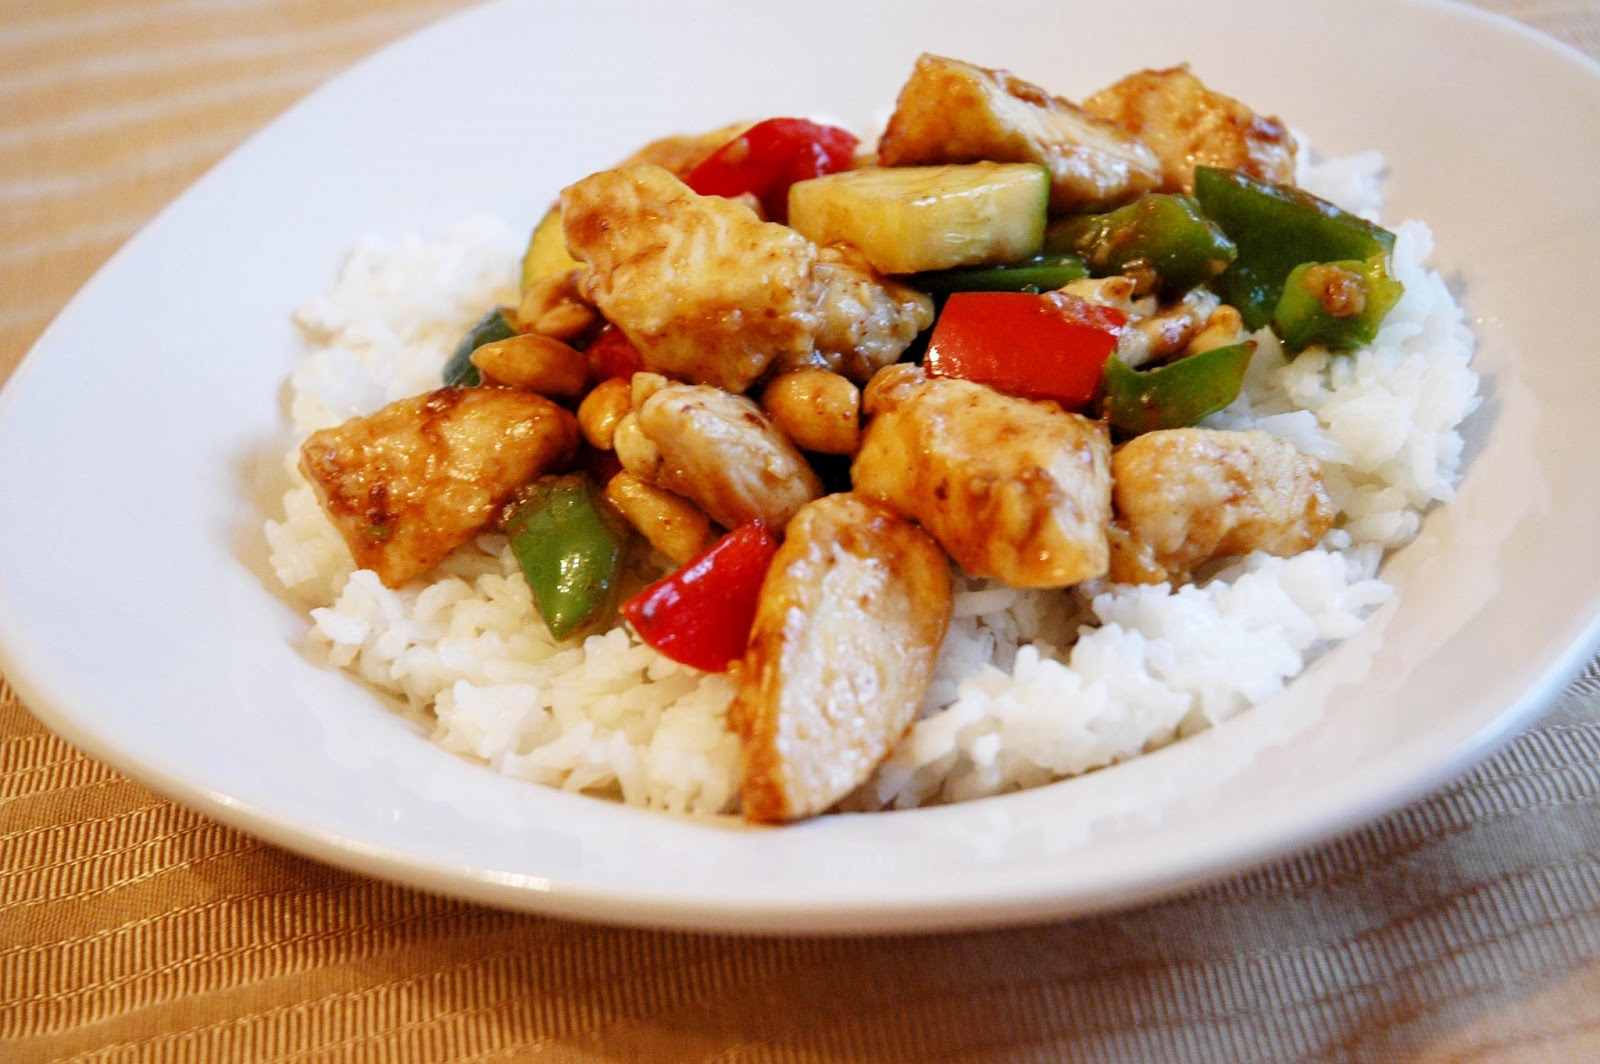 Seven Bum Kitchen: Panda Express Kung Pao Chicken